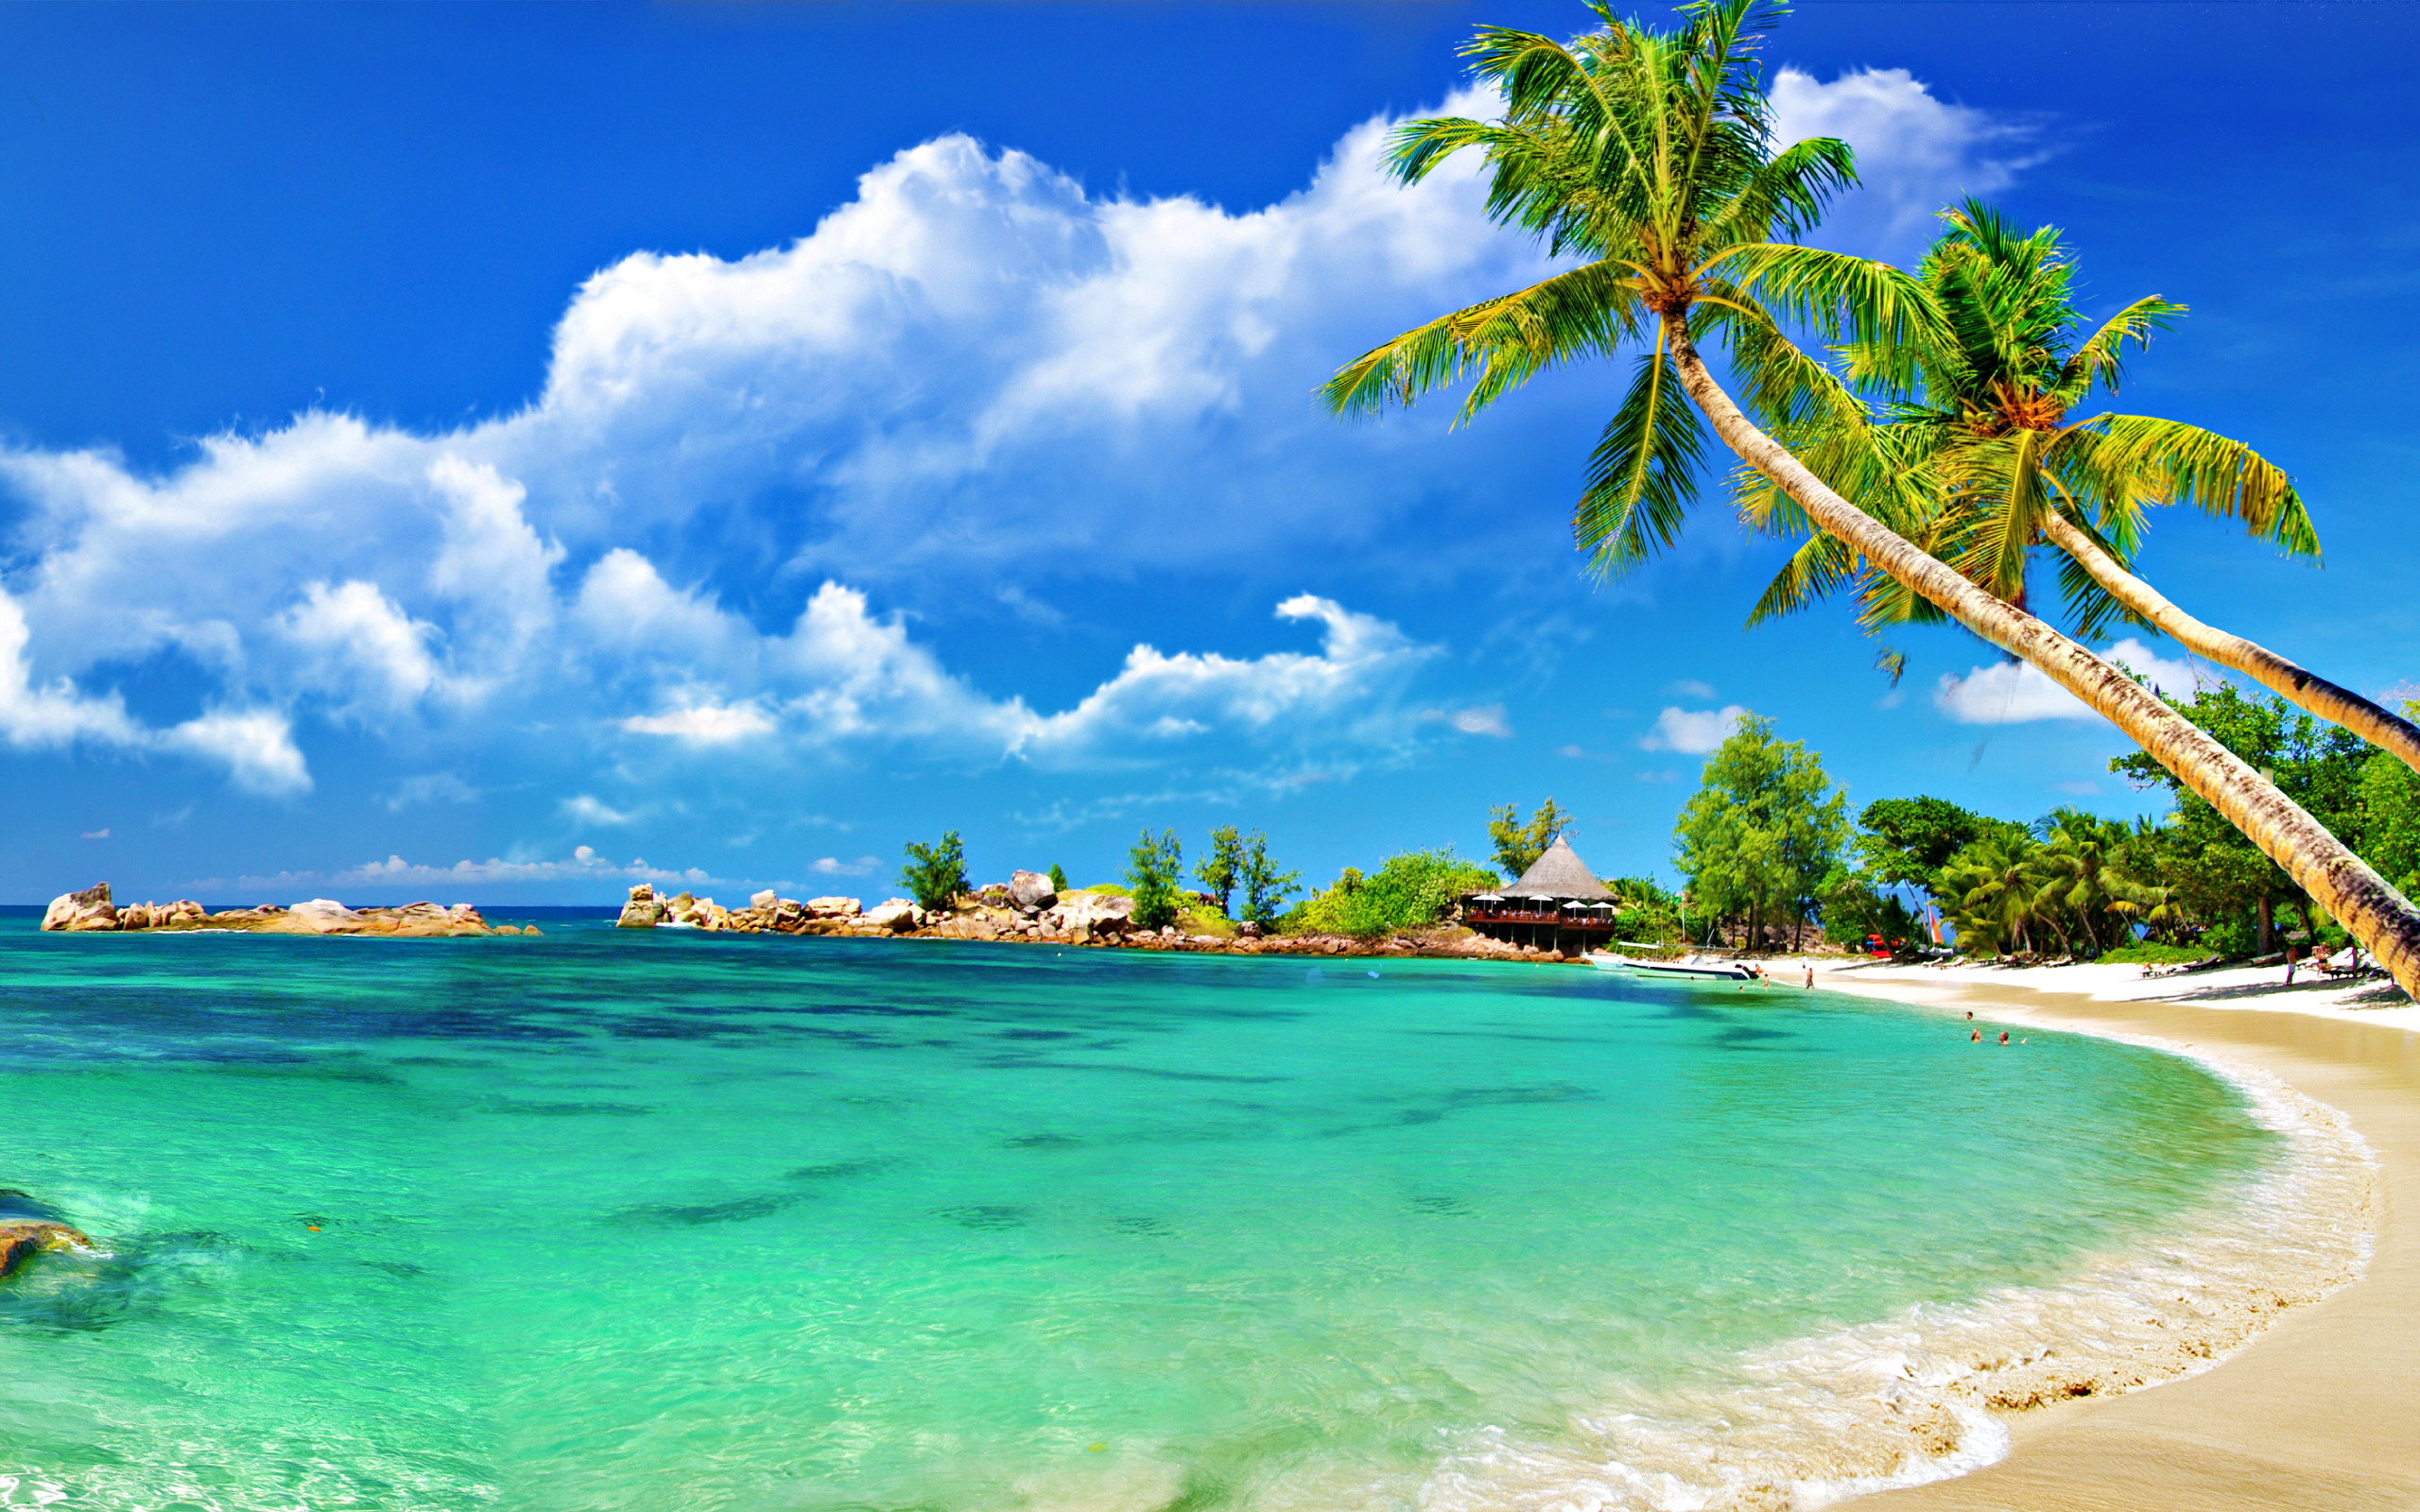 2560x1600 Trees on sandy beach | Sky HD Wallpaper - bathroom shop